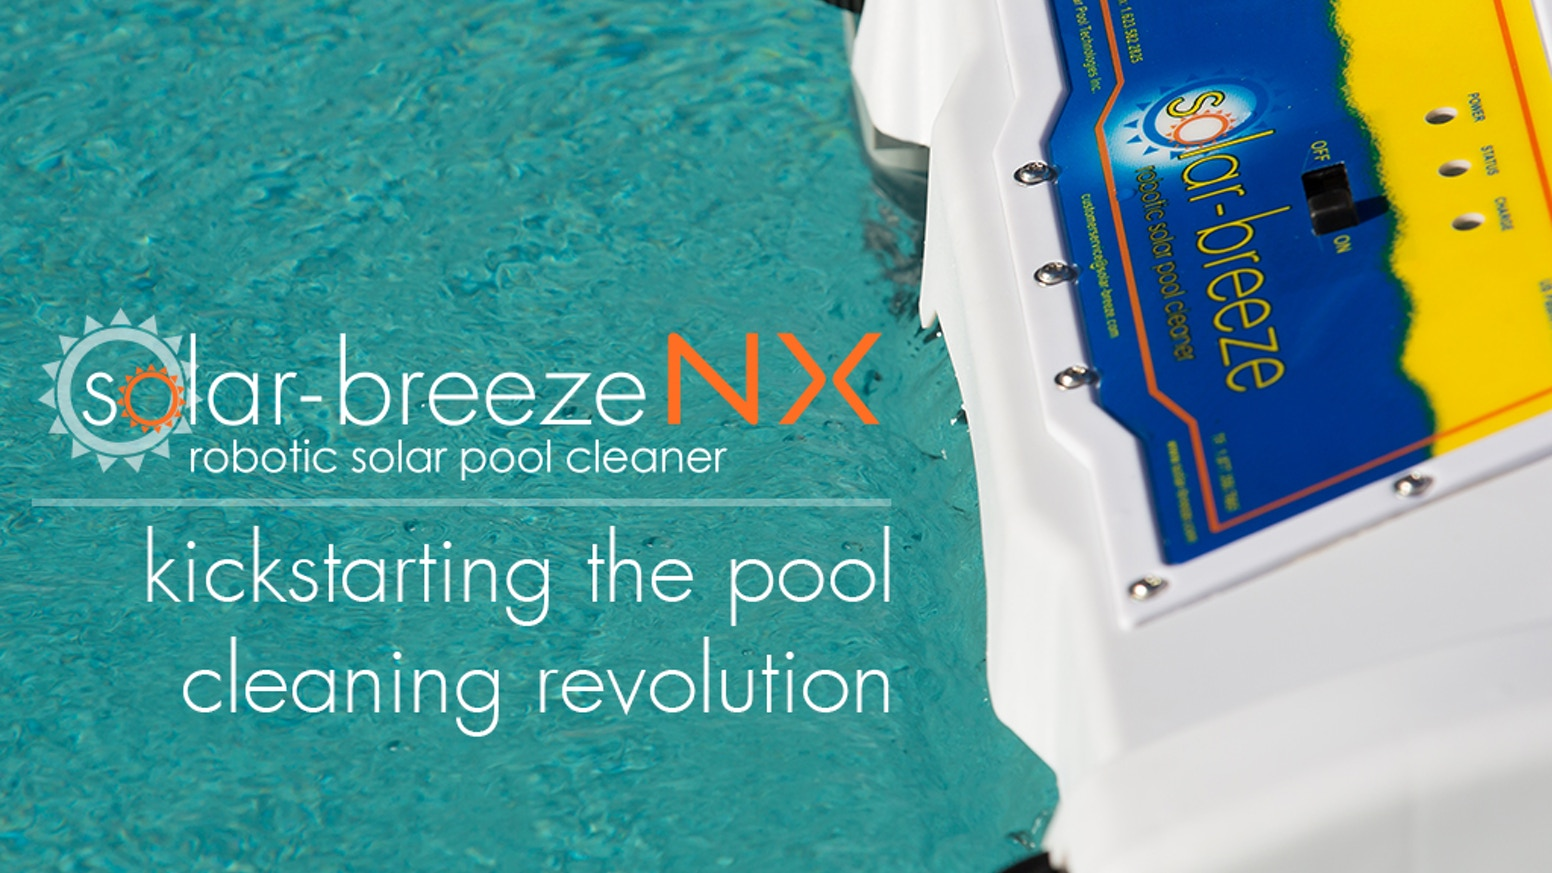 We're revolutionizing pool ownership, keeping your pool clean with solar power - saving time, energy, money & the Earth.